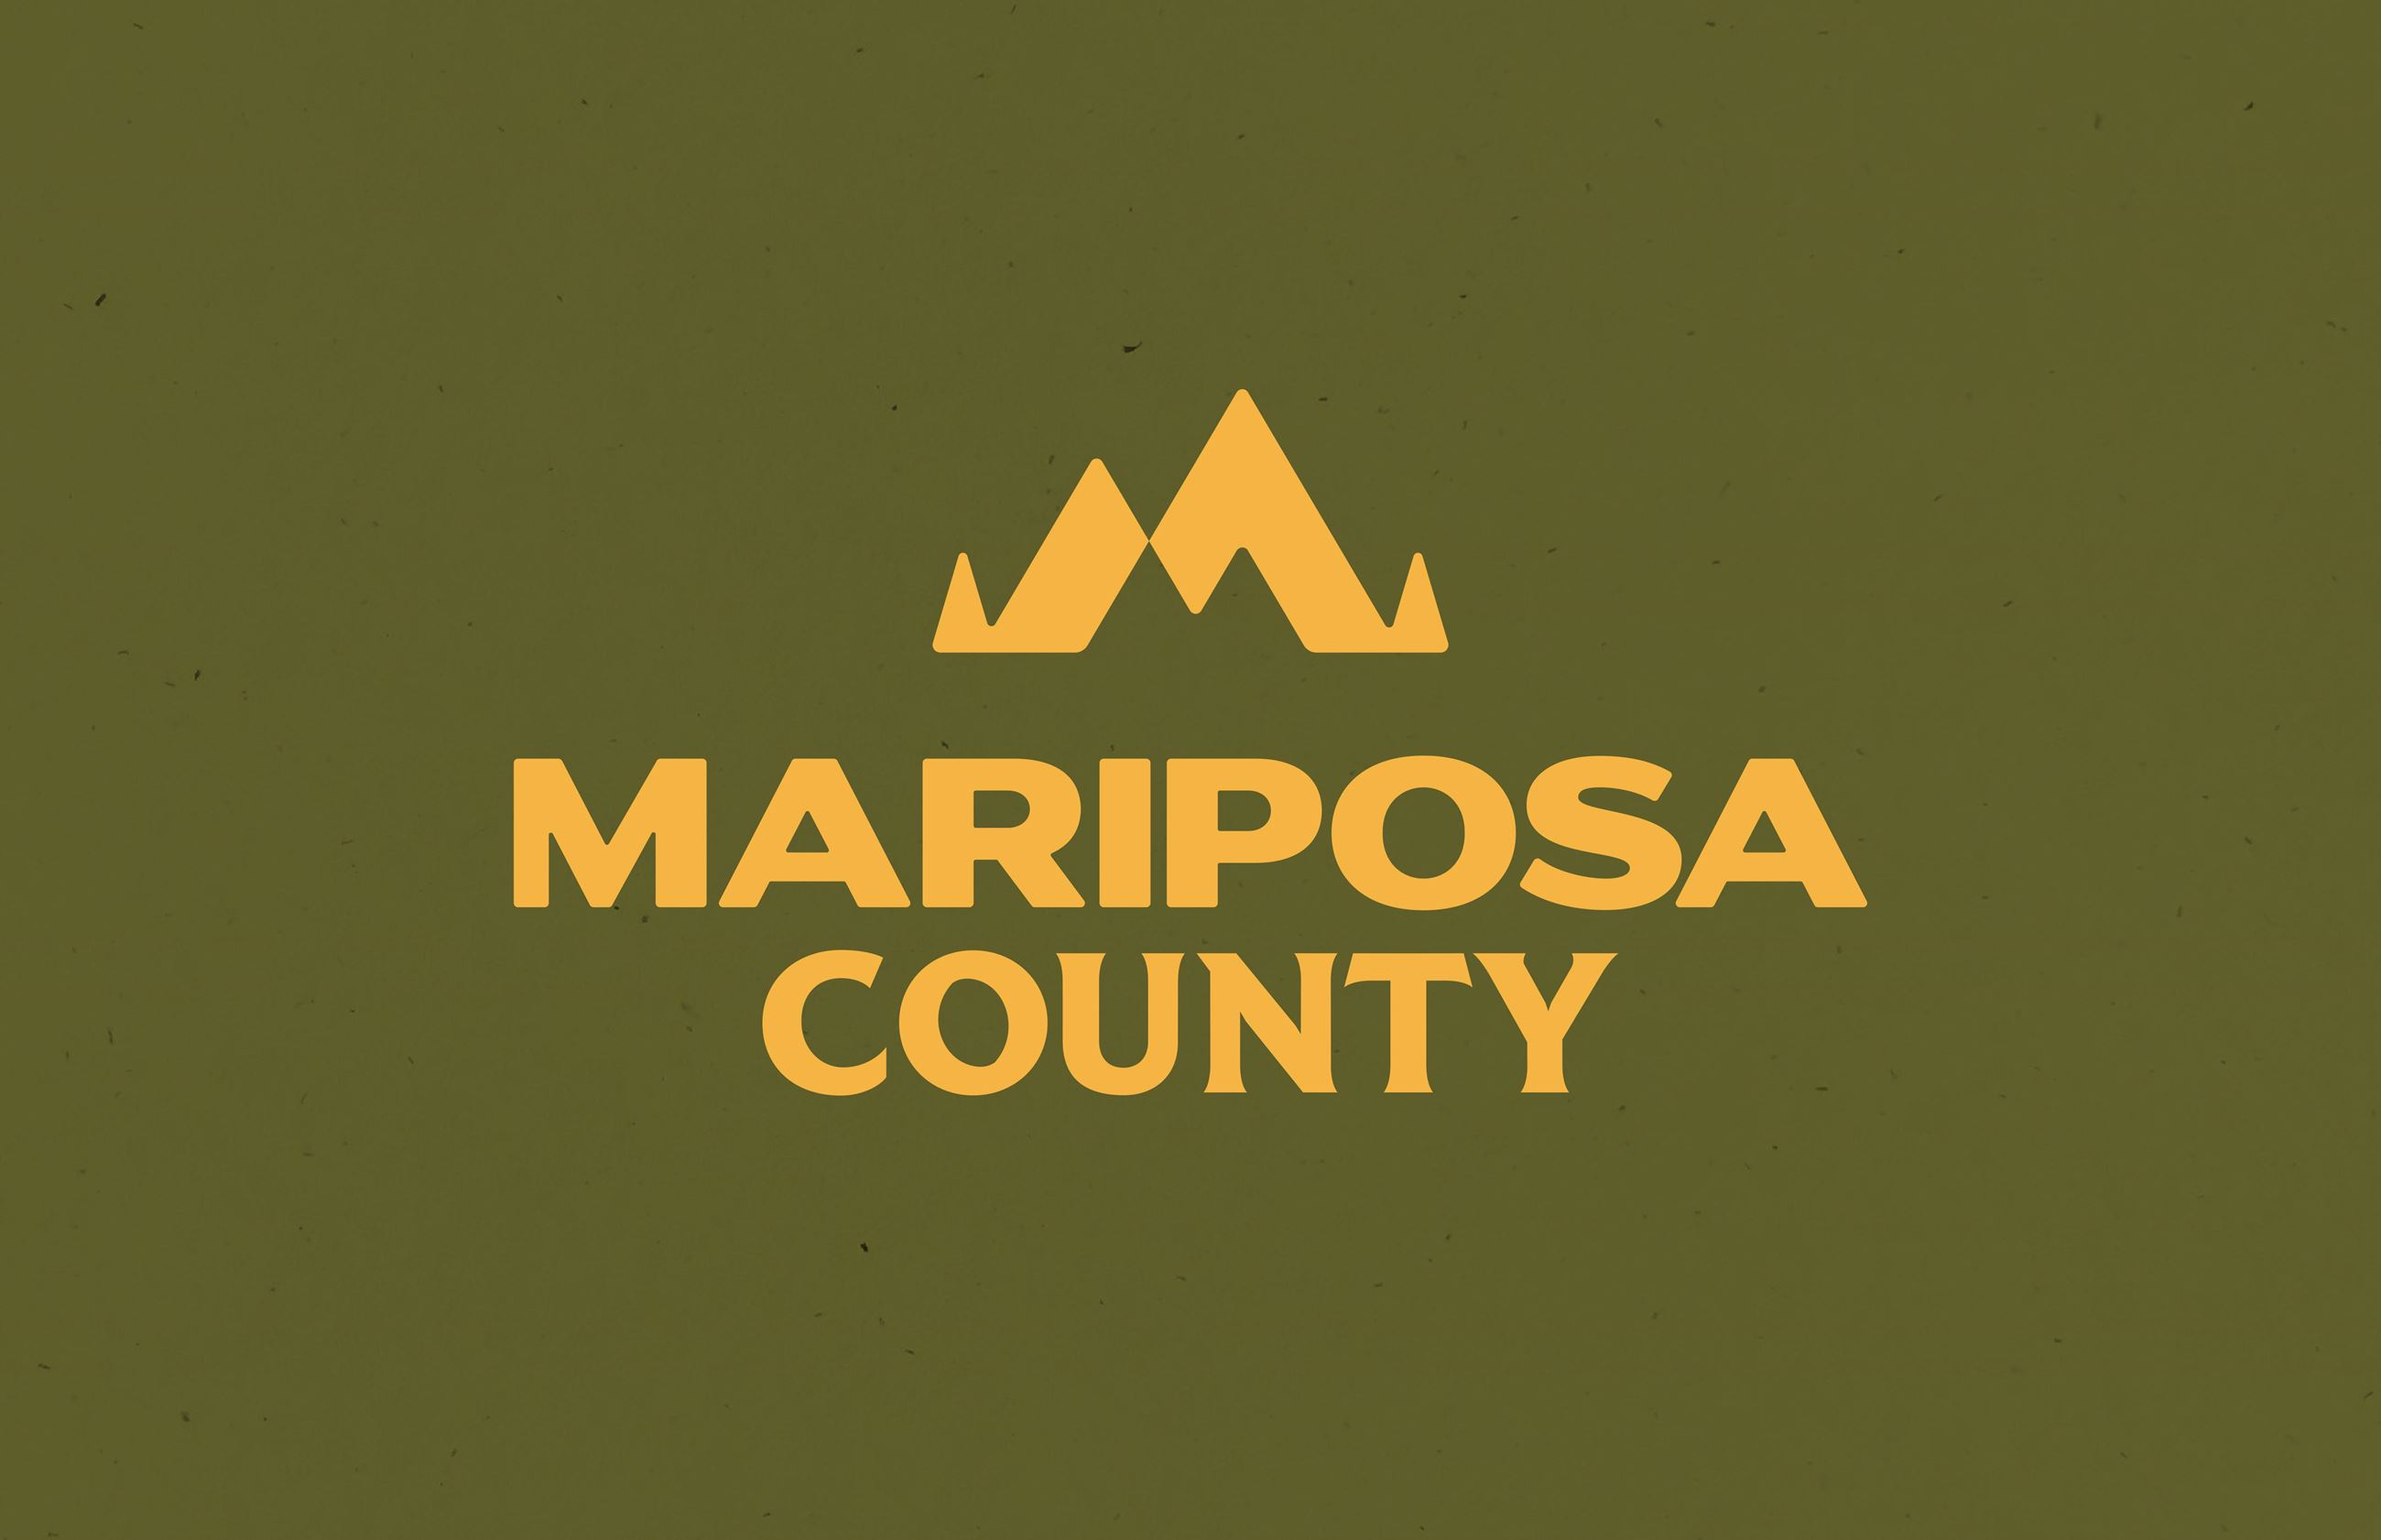 Mariposa County Place Brand_Green and Gold